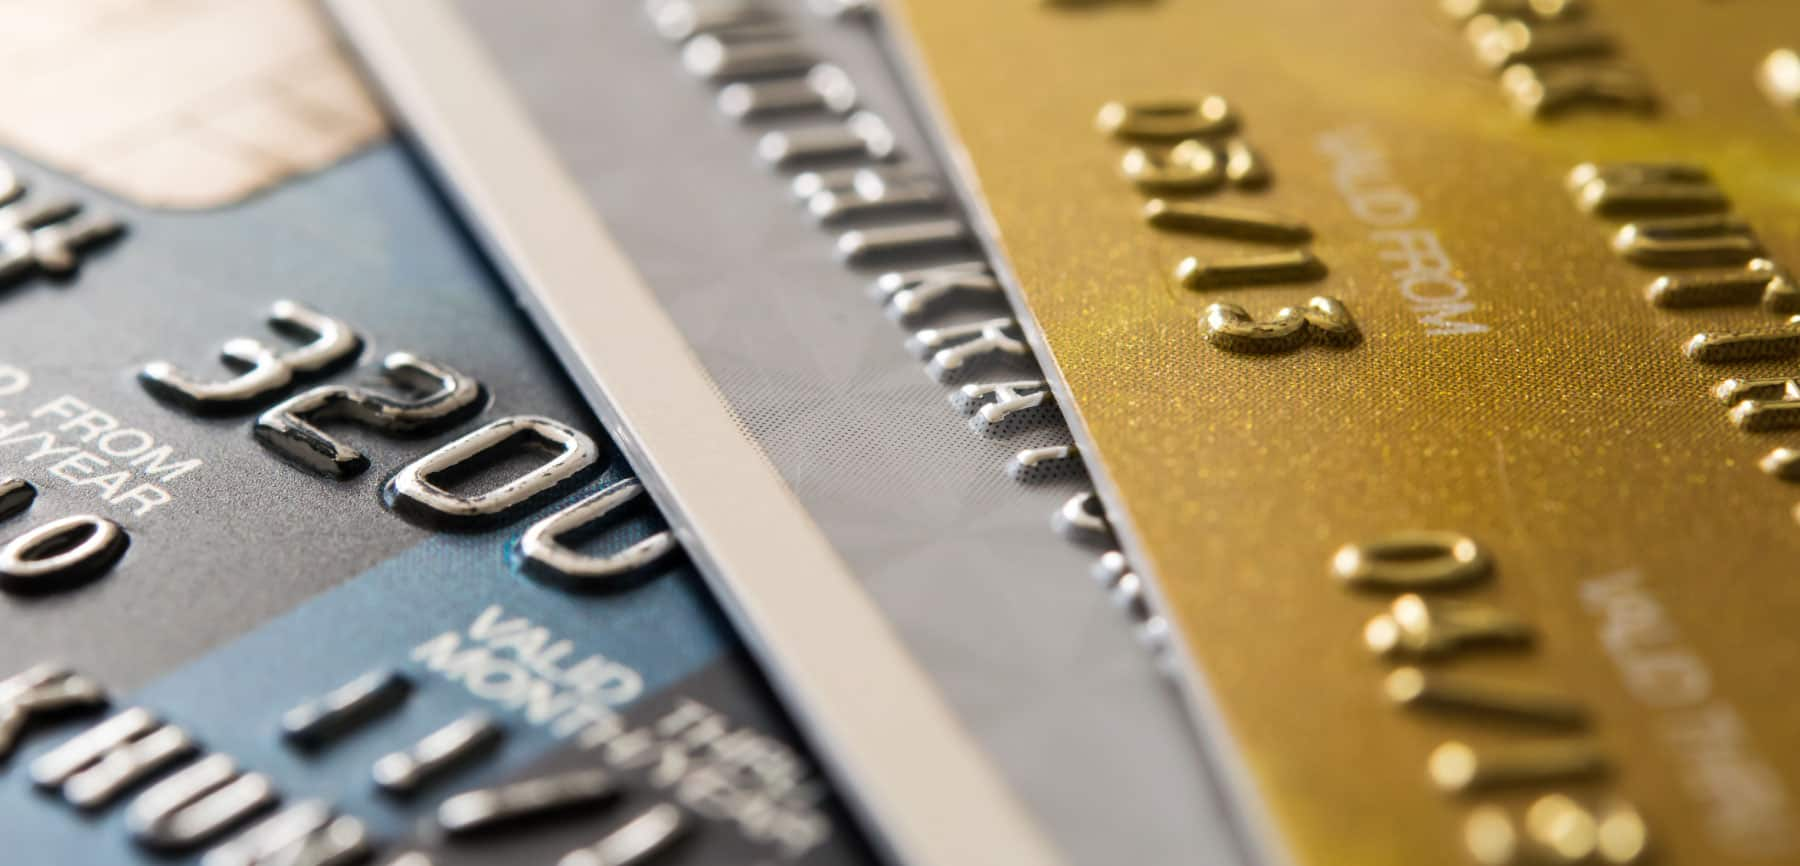 7 Best Credit Cards for Fair Credit: Student, Business, and No Fee